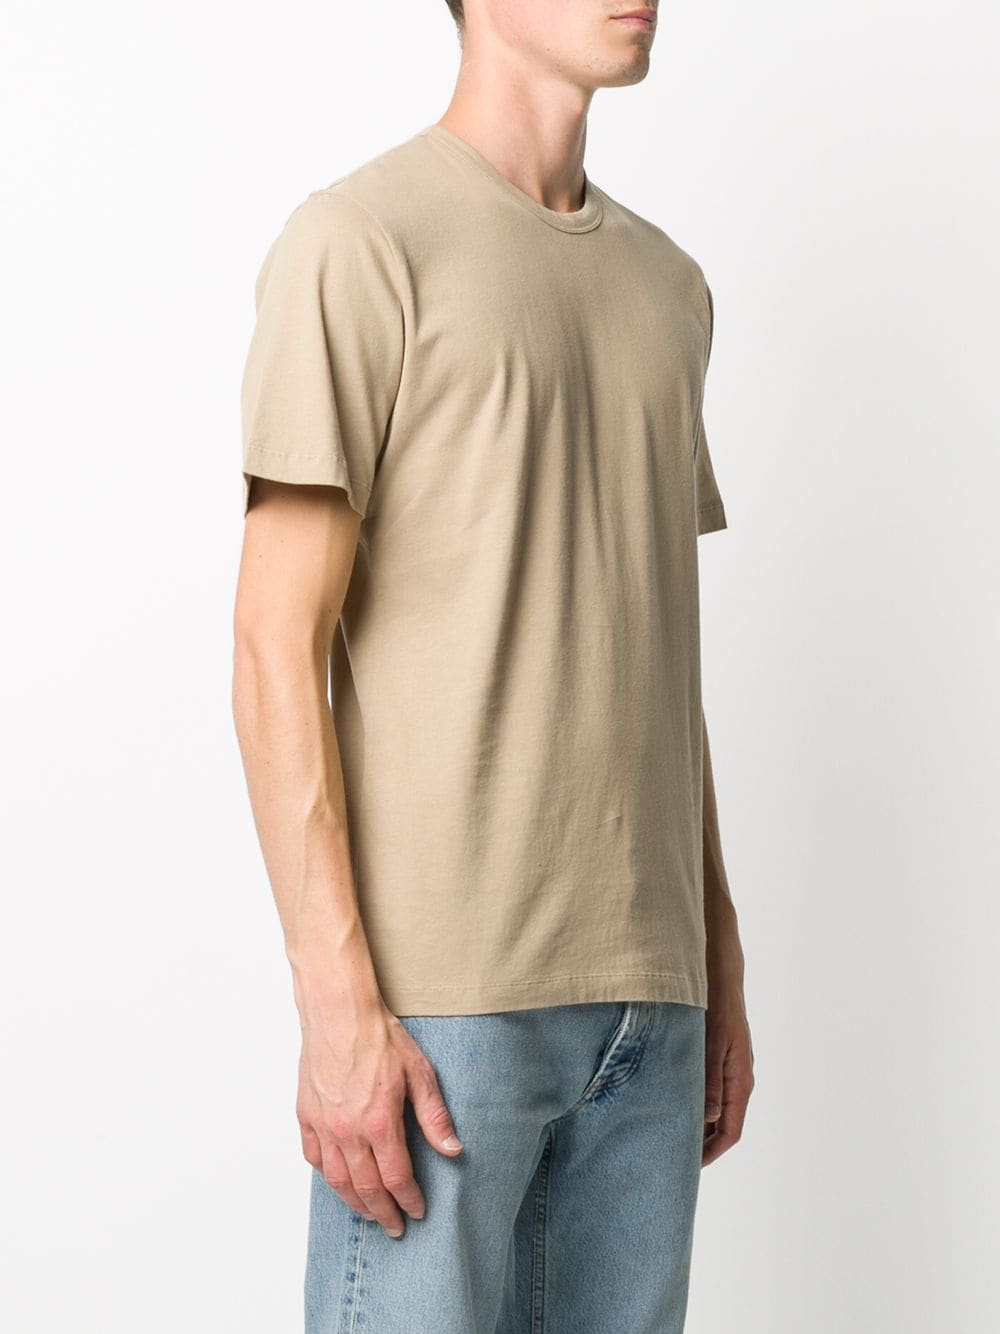 Sunflower t-shirt basic uomo SUNFLOWER | T-shirt | 2011150